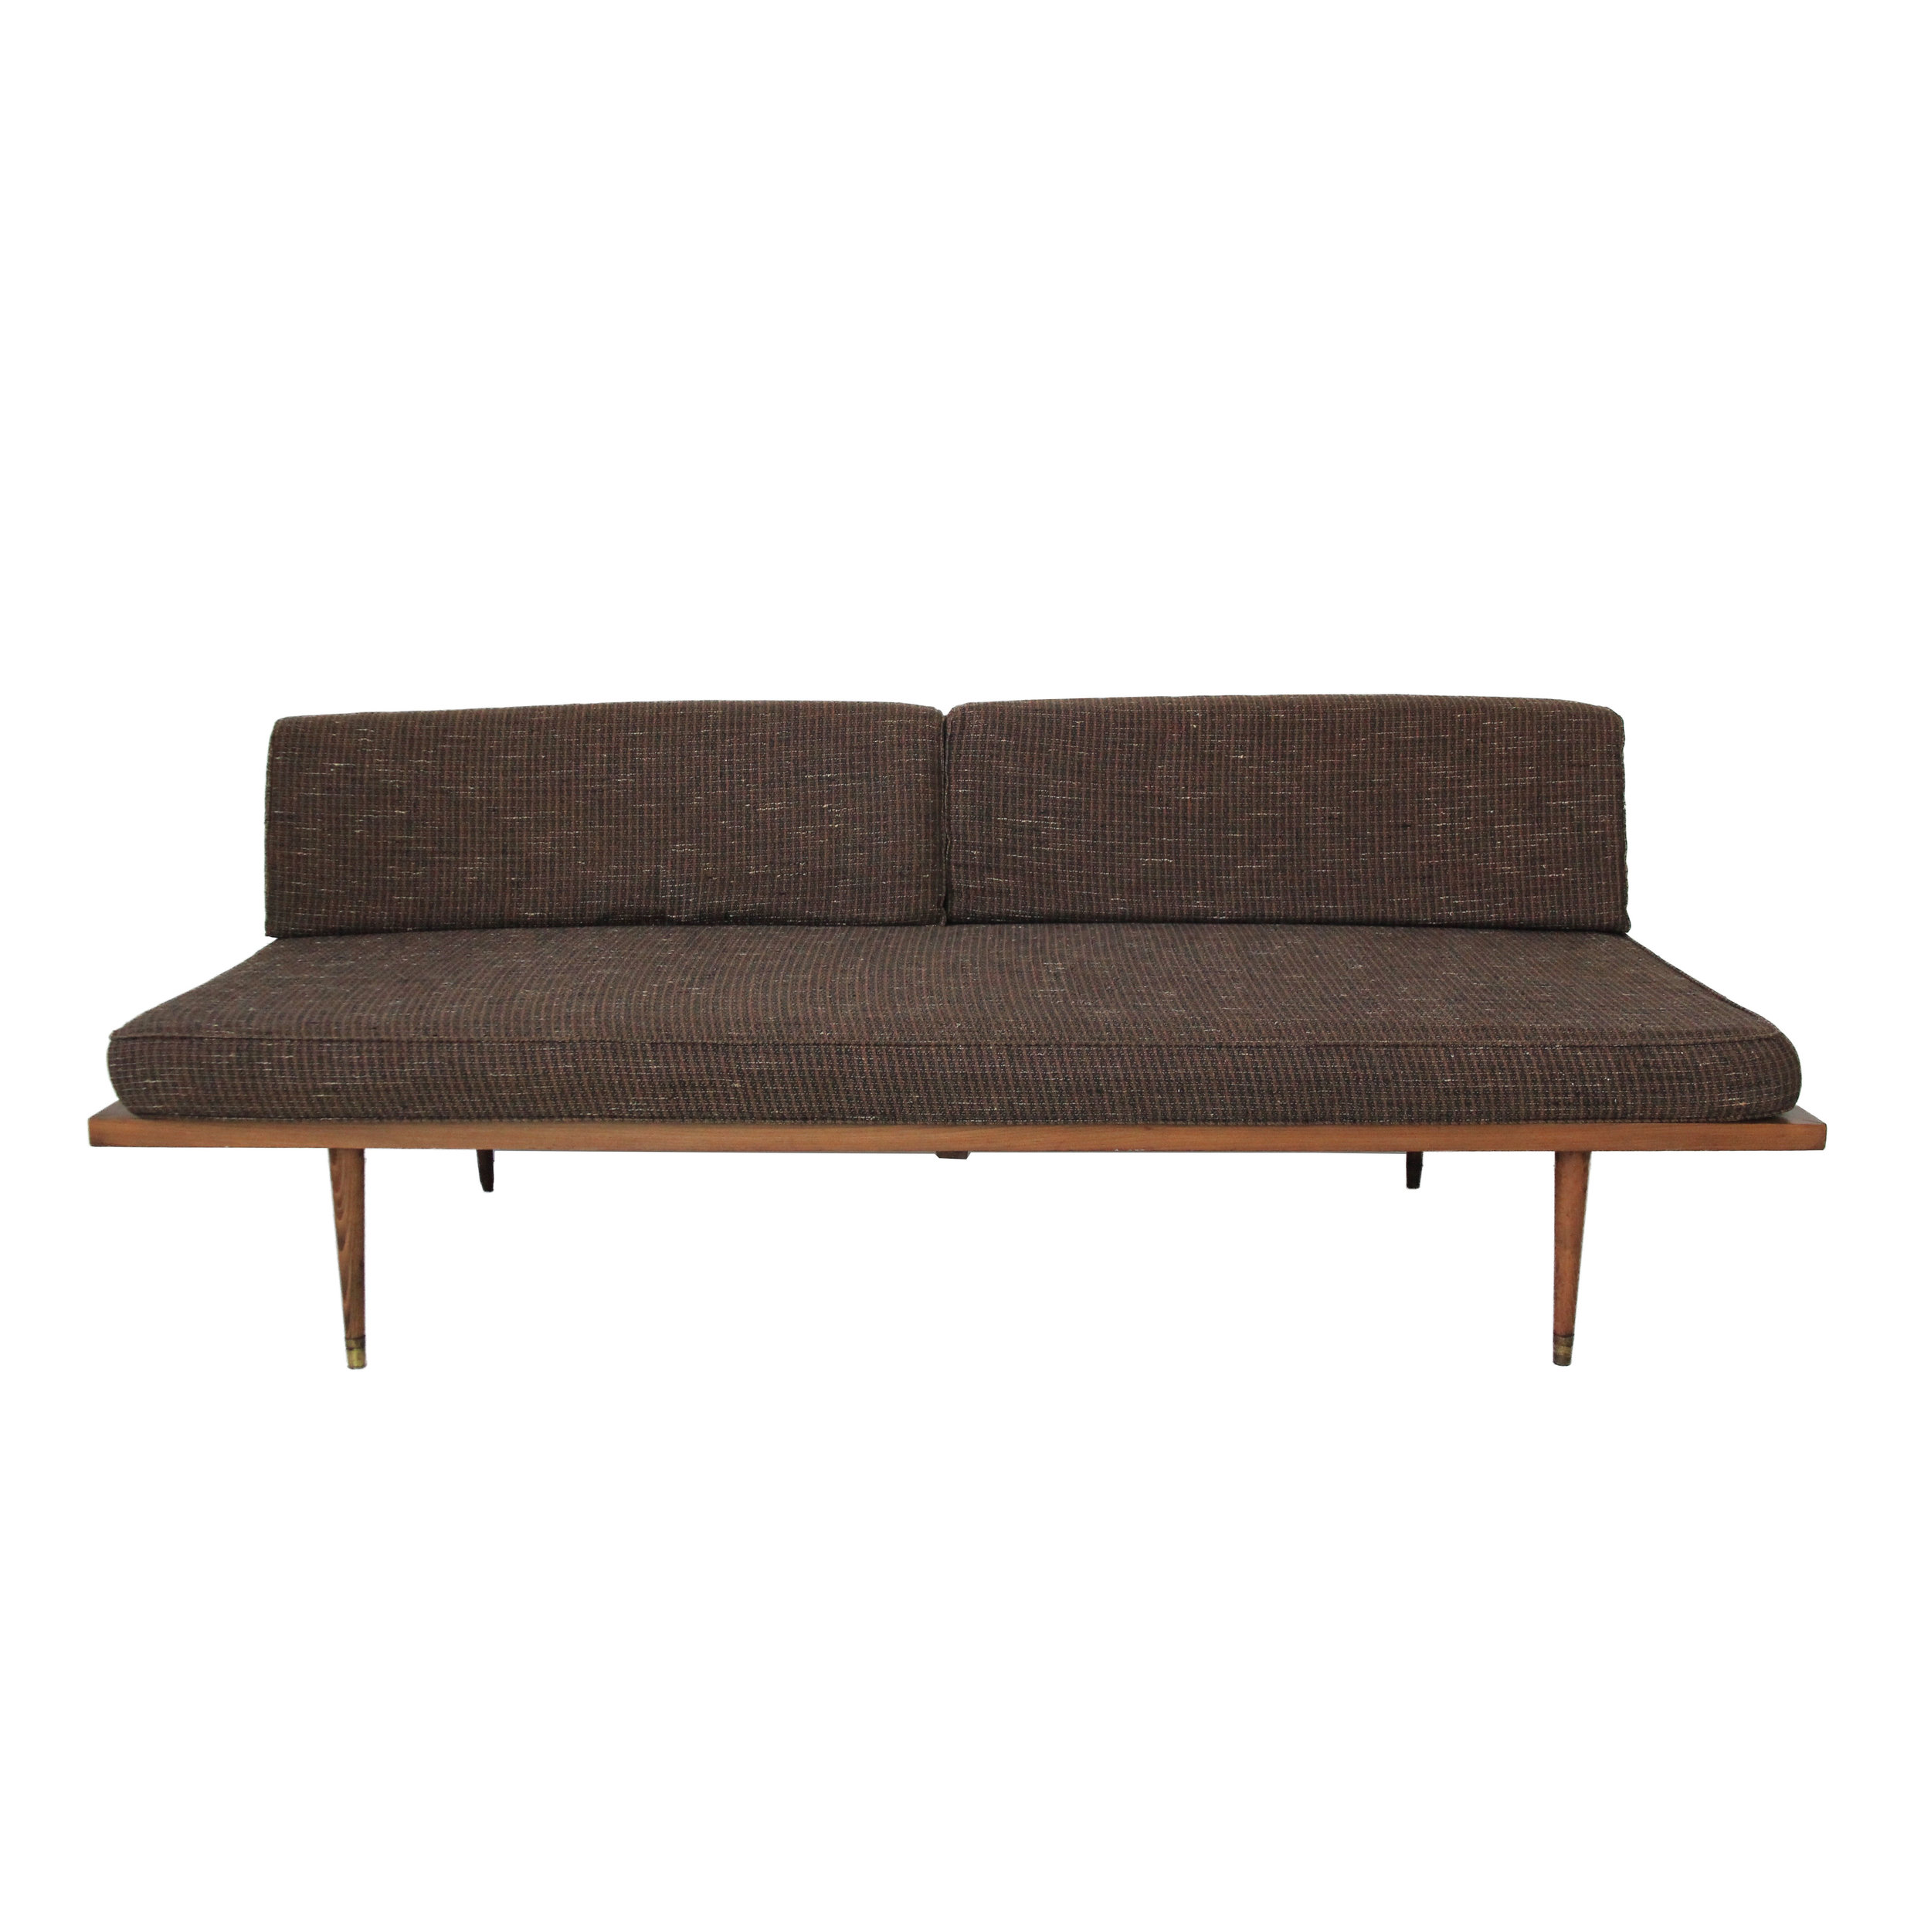 Vintage Mid Century Modern Daybed Sofa